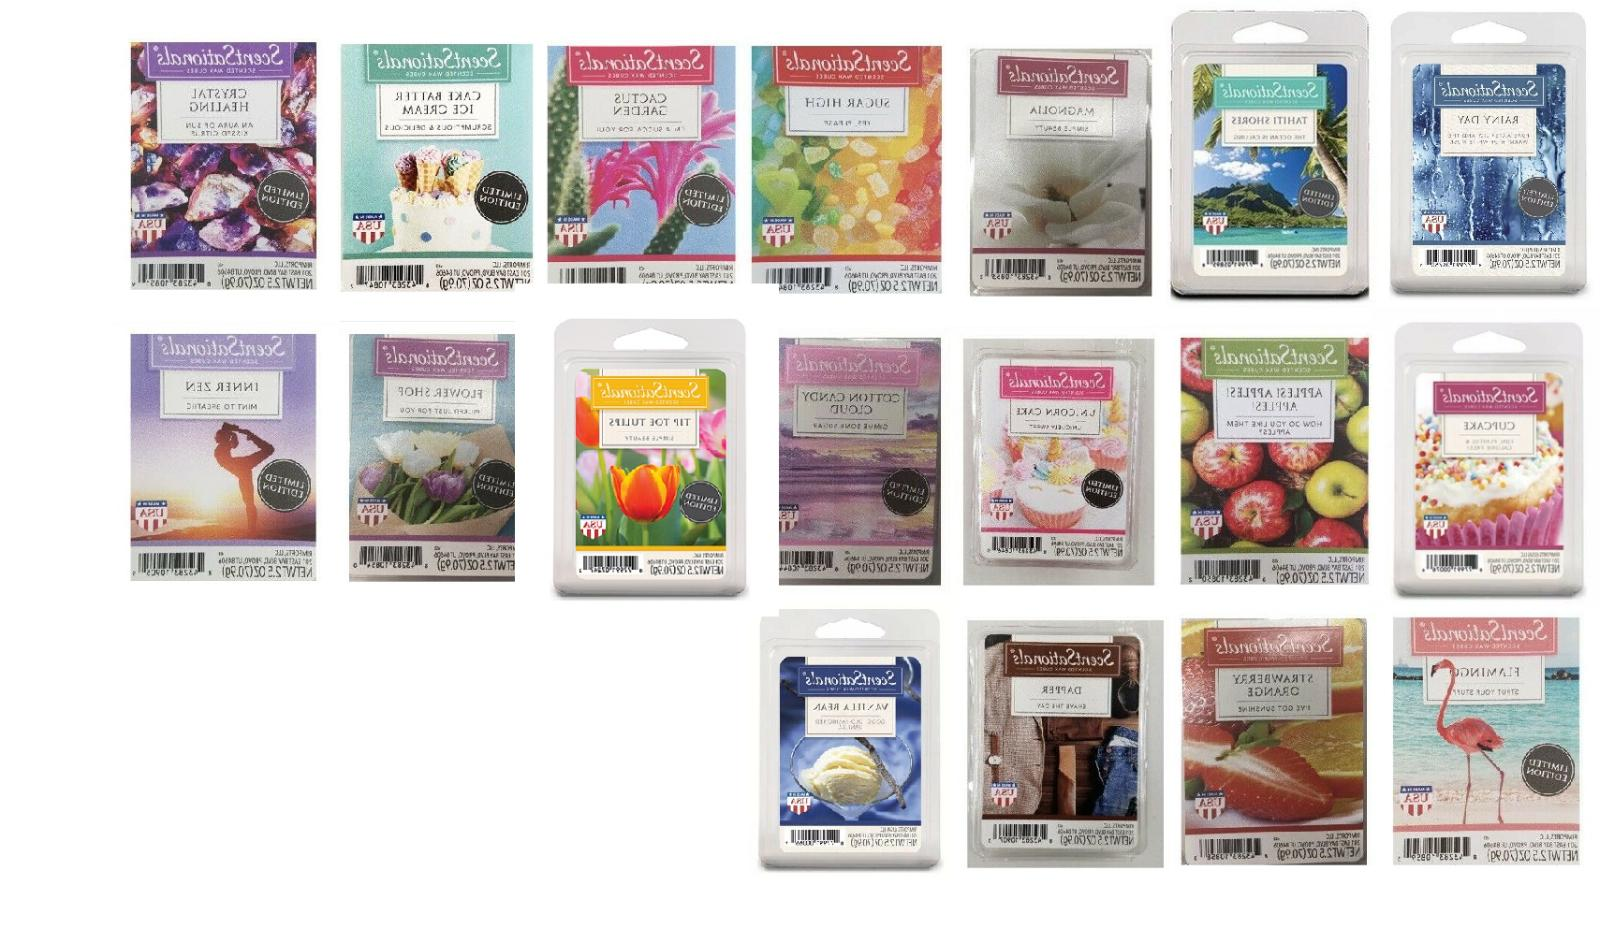 scented wax cubes melts 1 2 packs